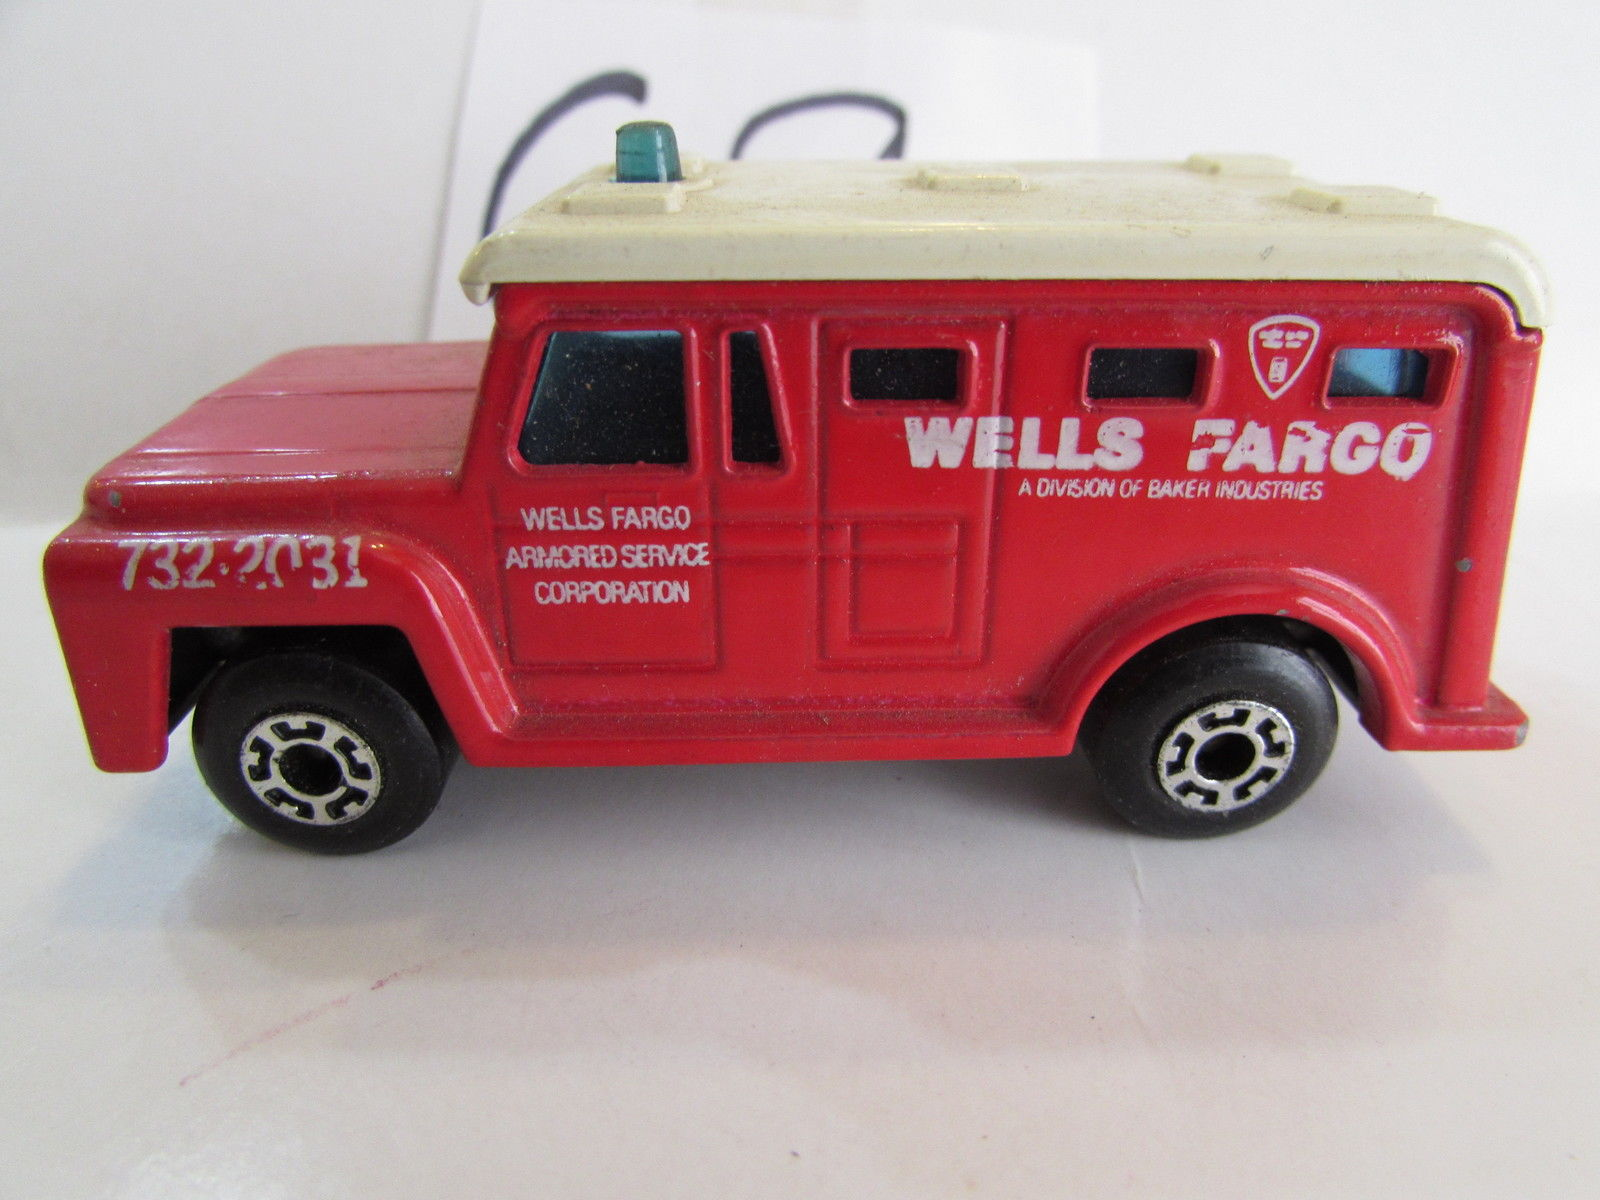 MATCHBOX LESNEY 1978 SUPERFAST - ARMORED TRUCK #69 - MADE IN ENGLAND - LOOSE